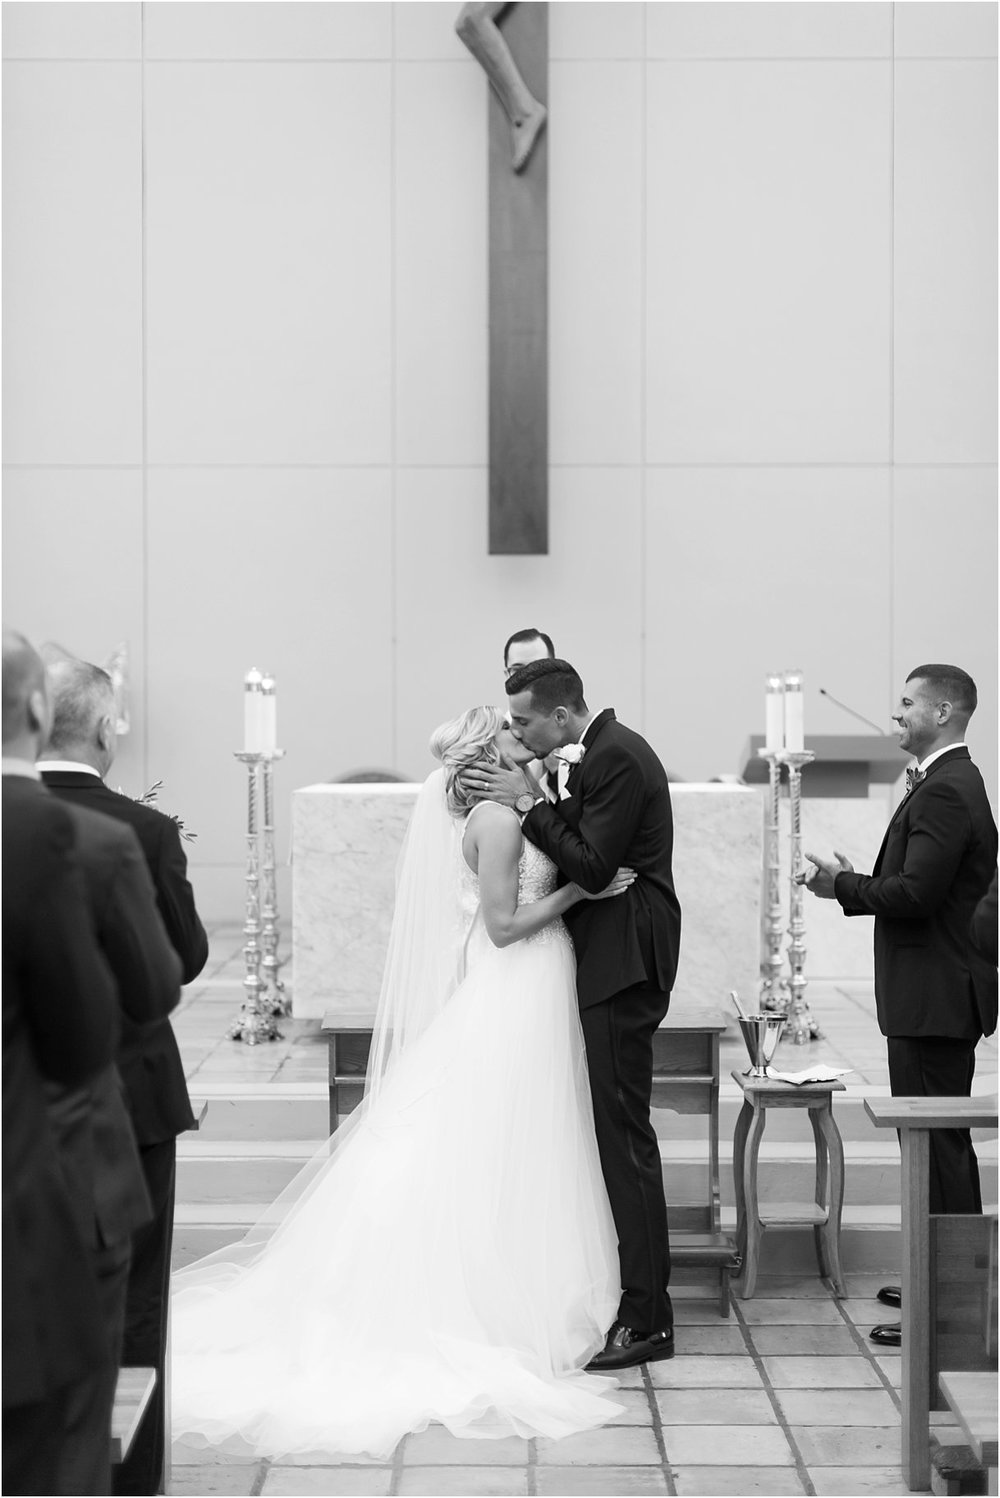 First Kiss at Oxford Exchange Wedding St Lawerence Catholic Church Tampa